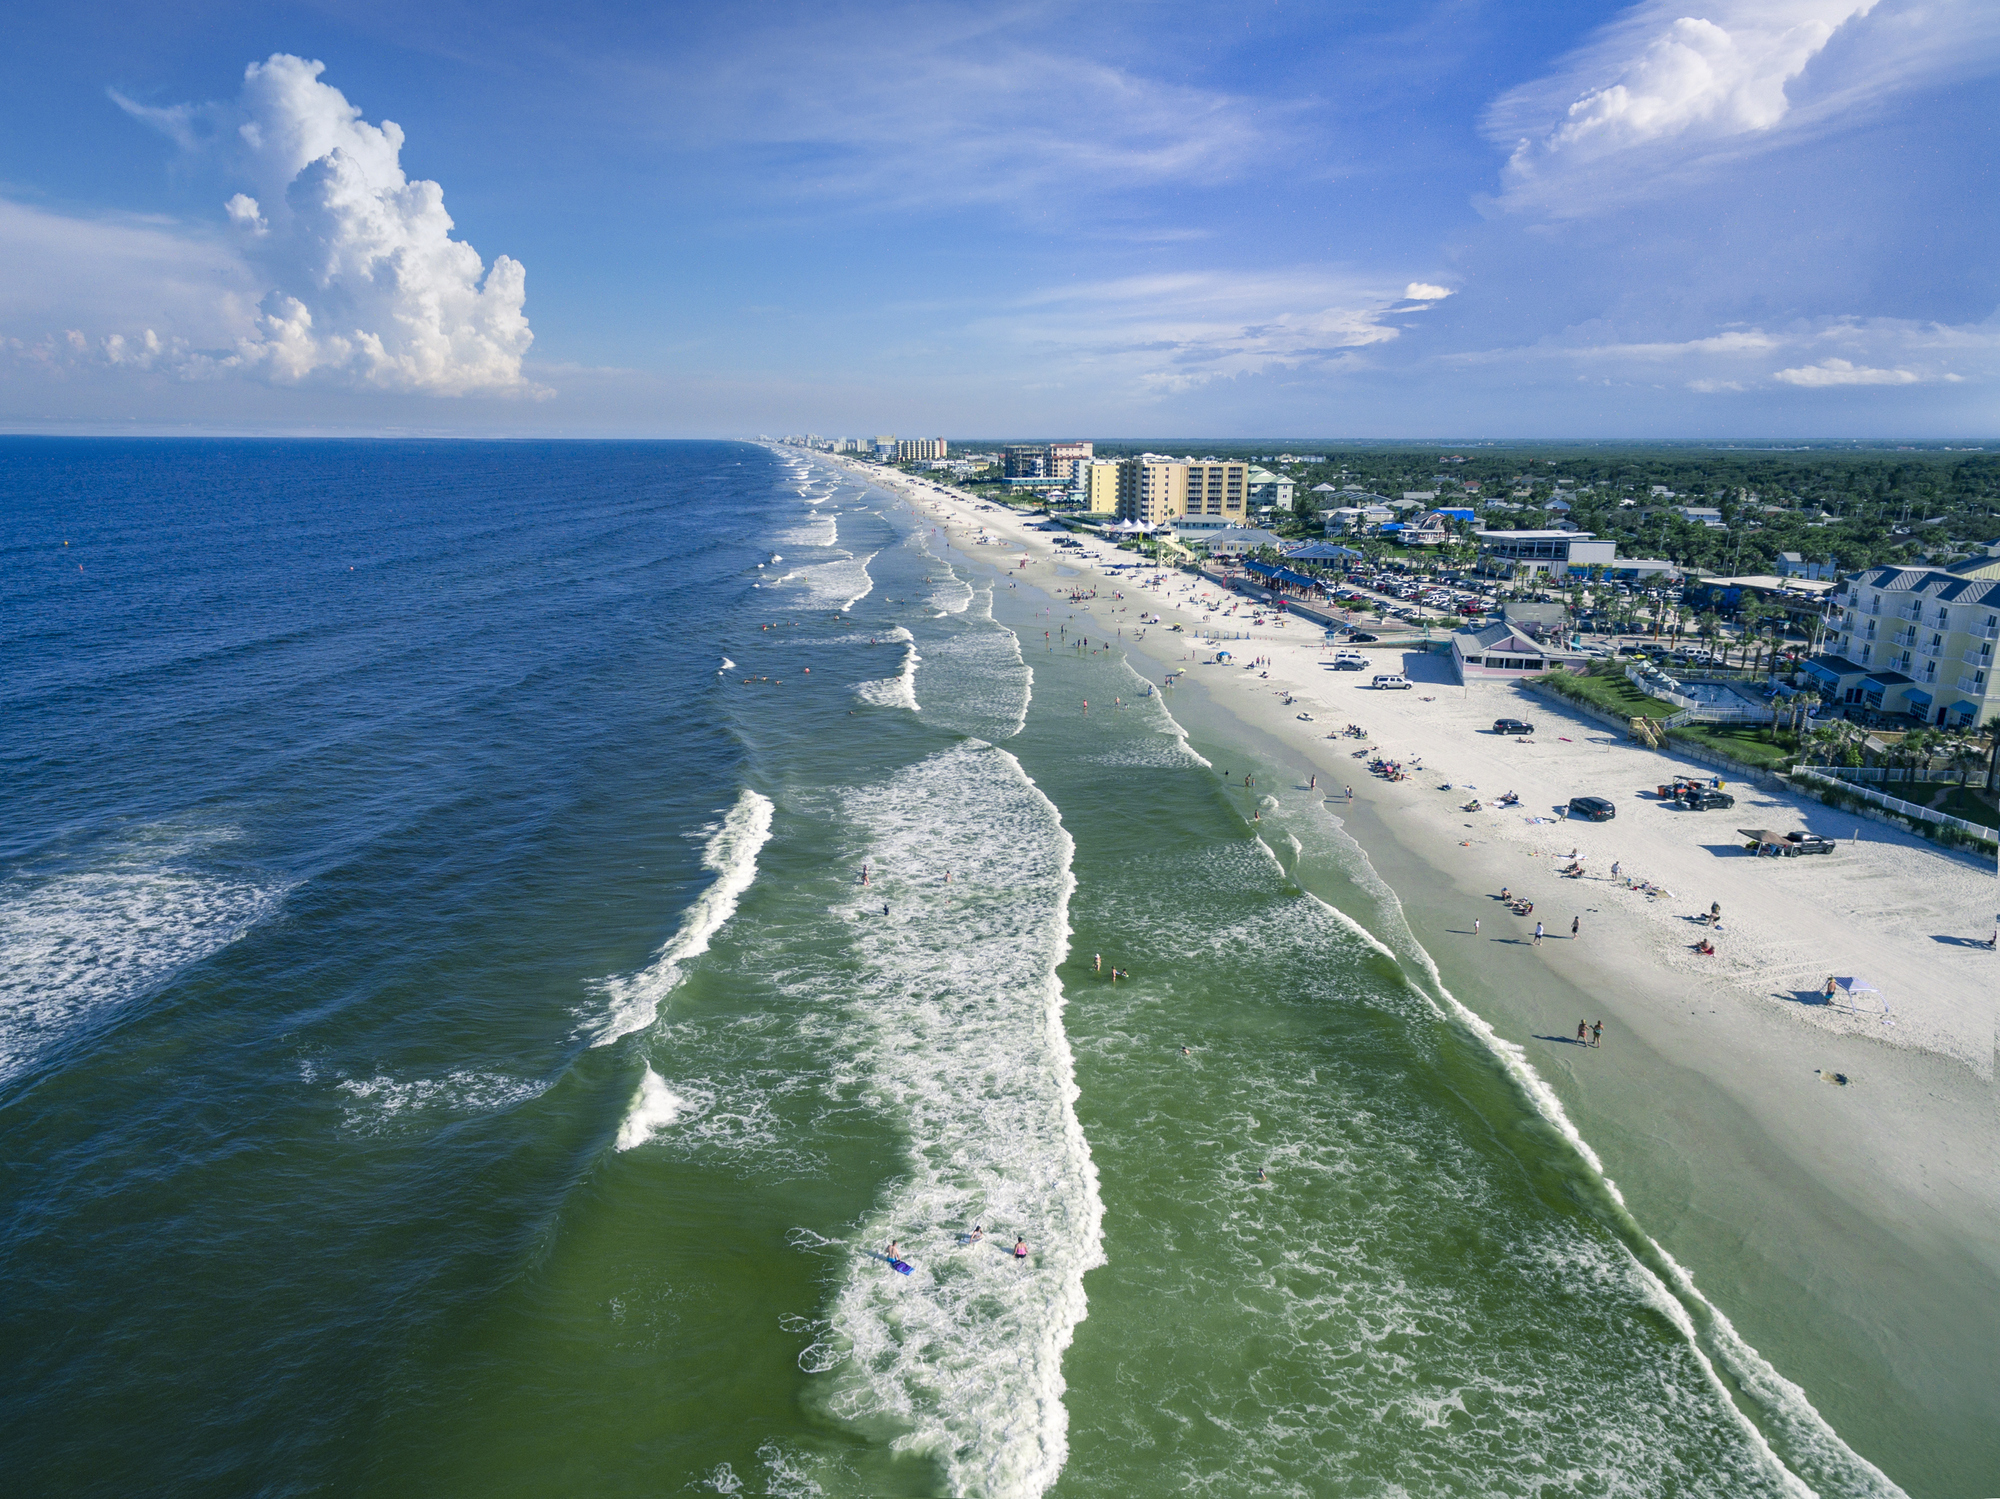 Three People Injured In Separate Shark S At Florida Beach